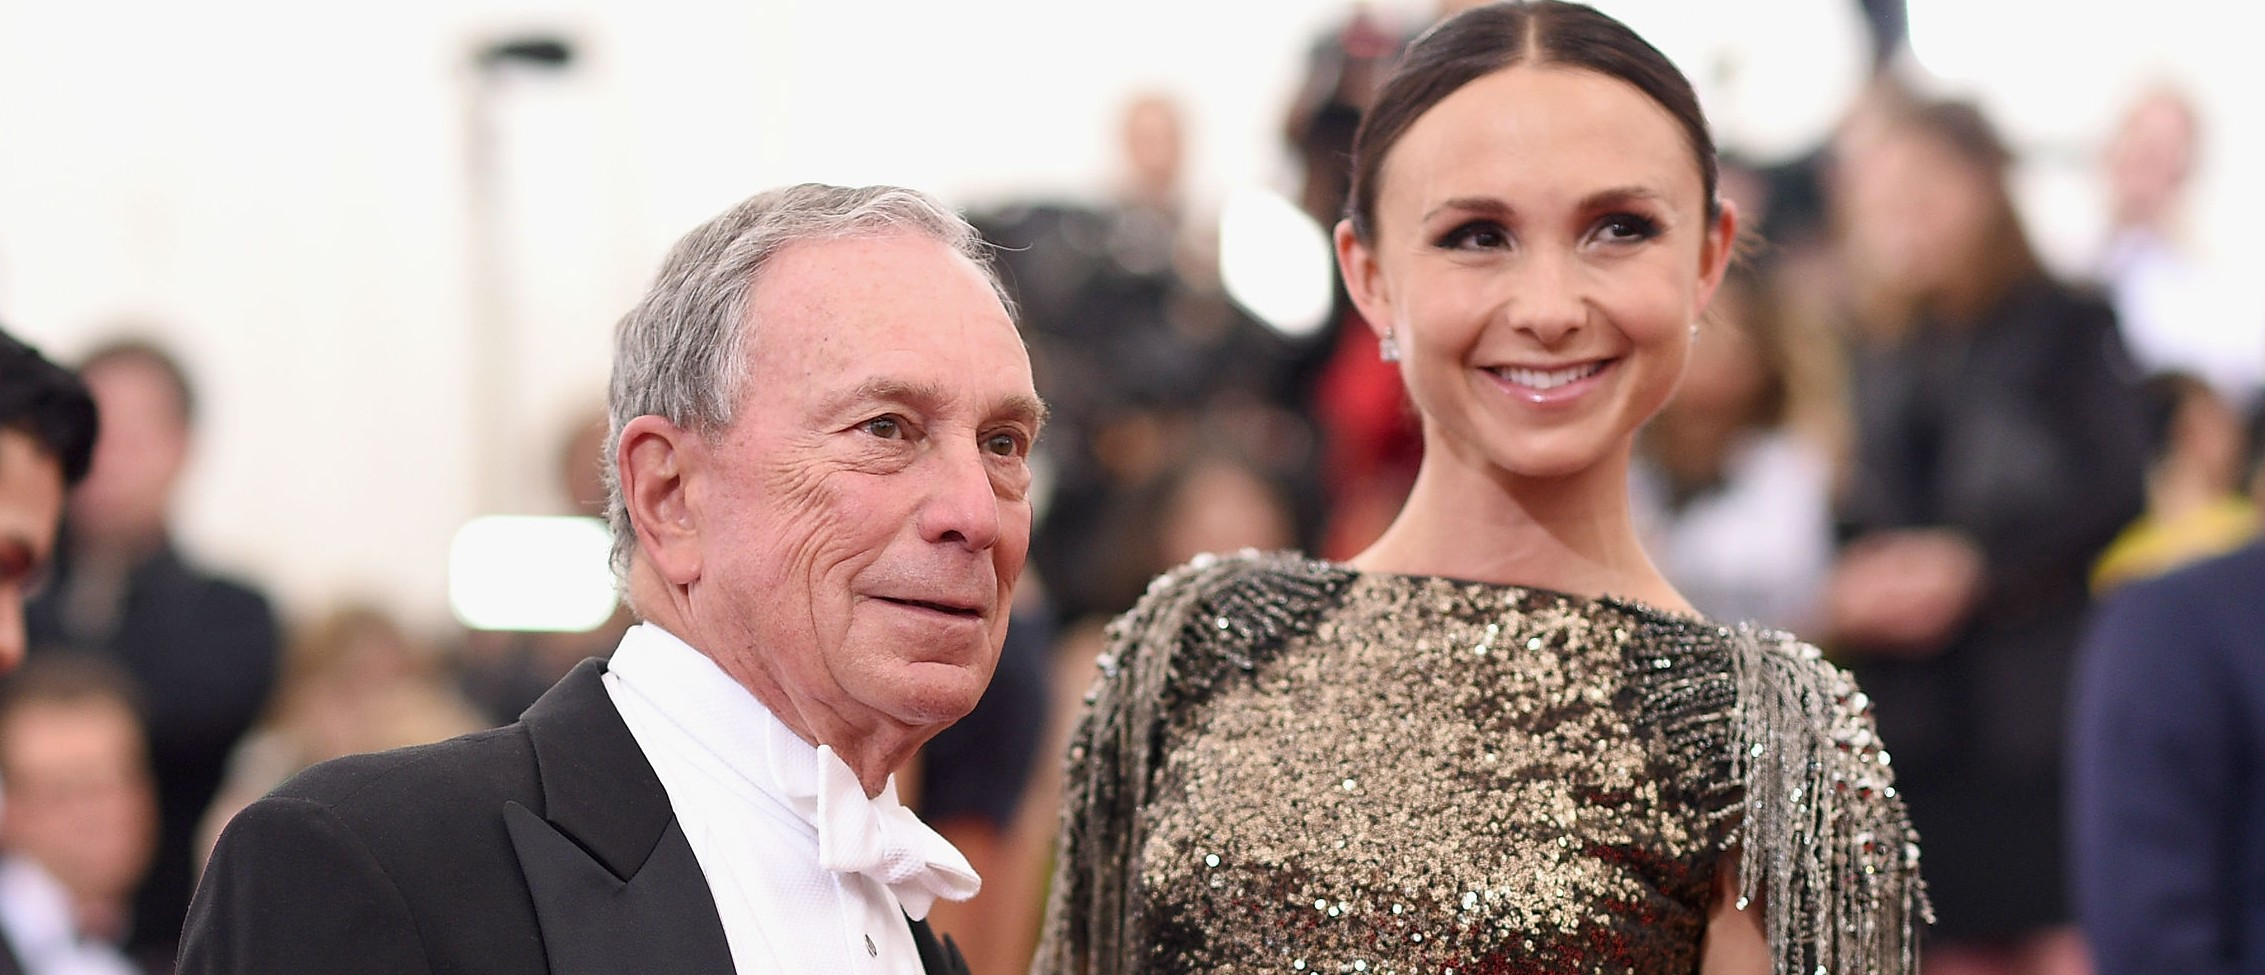 Georgina Bloomberg didn't want her dad to run for president.